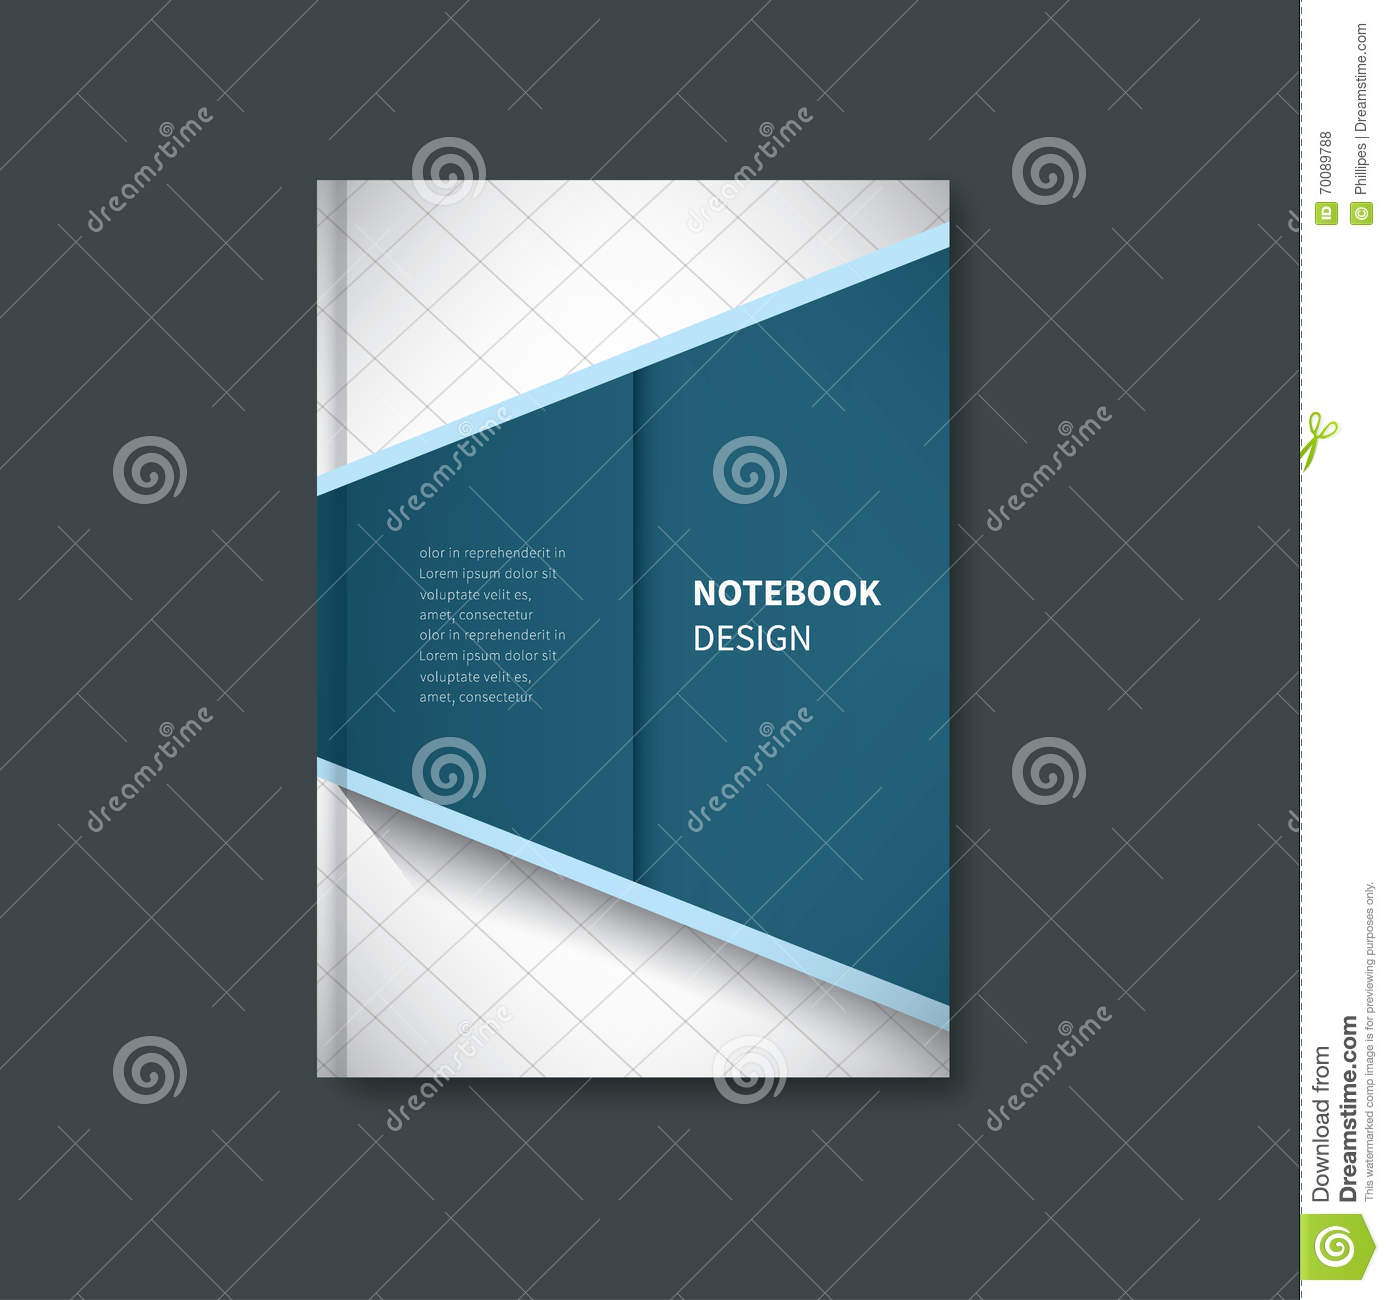 notebook first page cover design stock vector image 70089788 notebook first page cover design